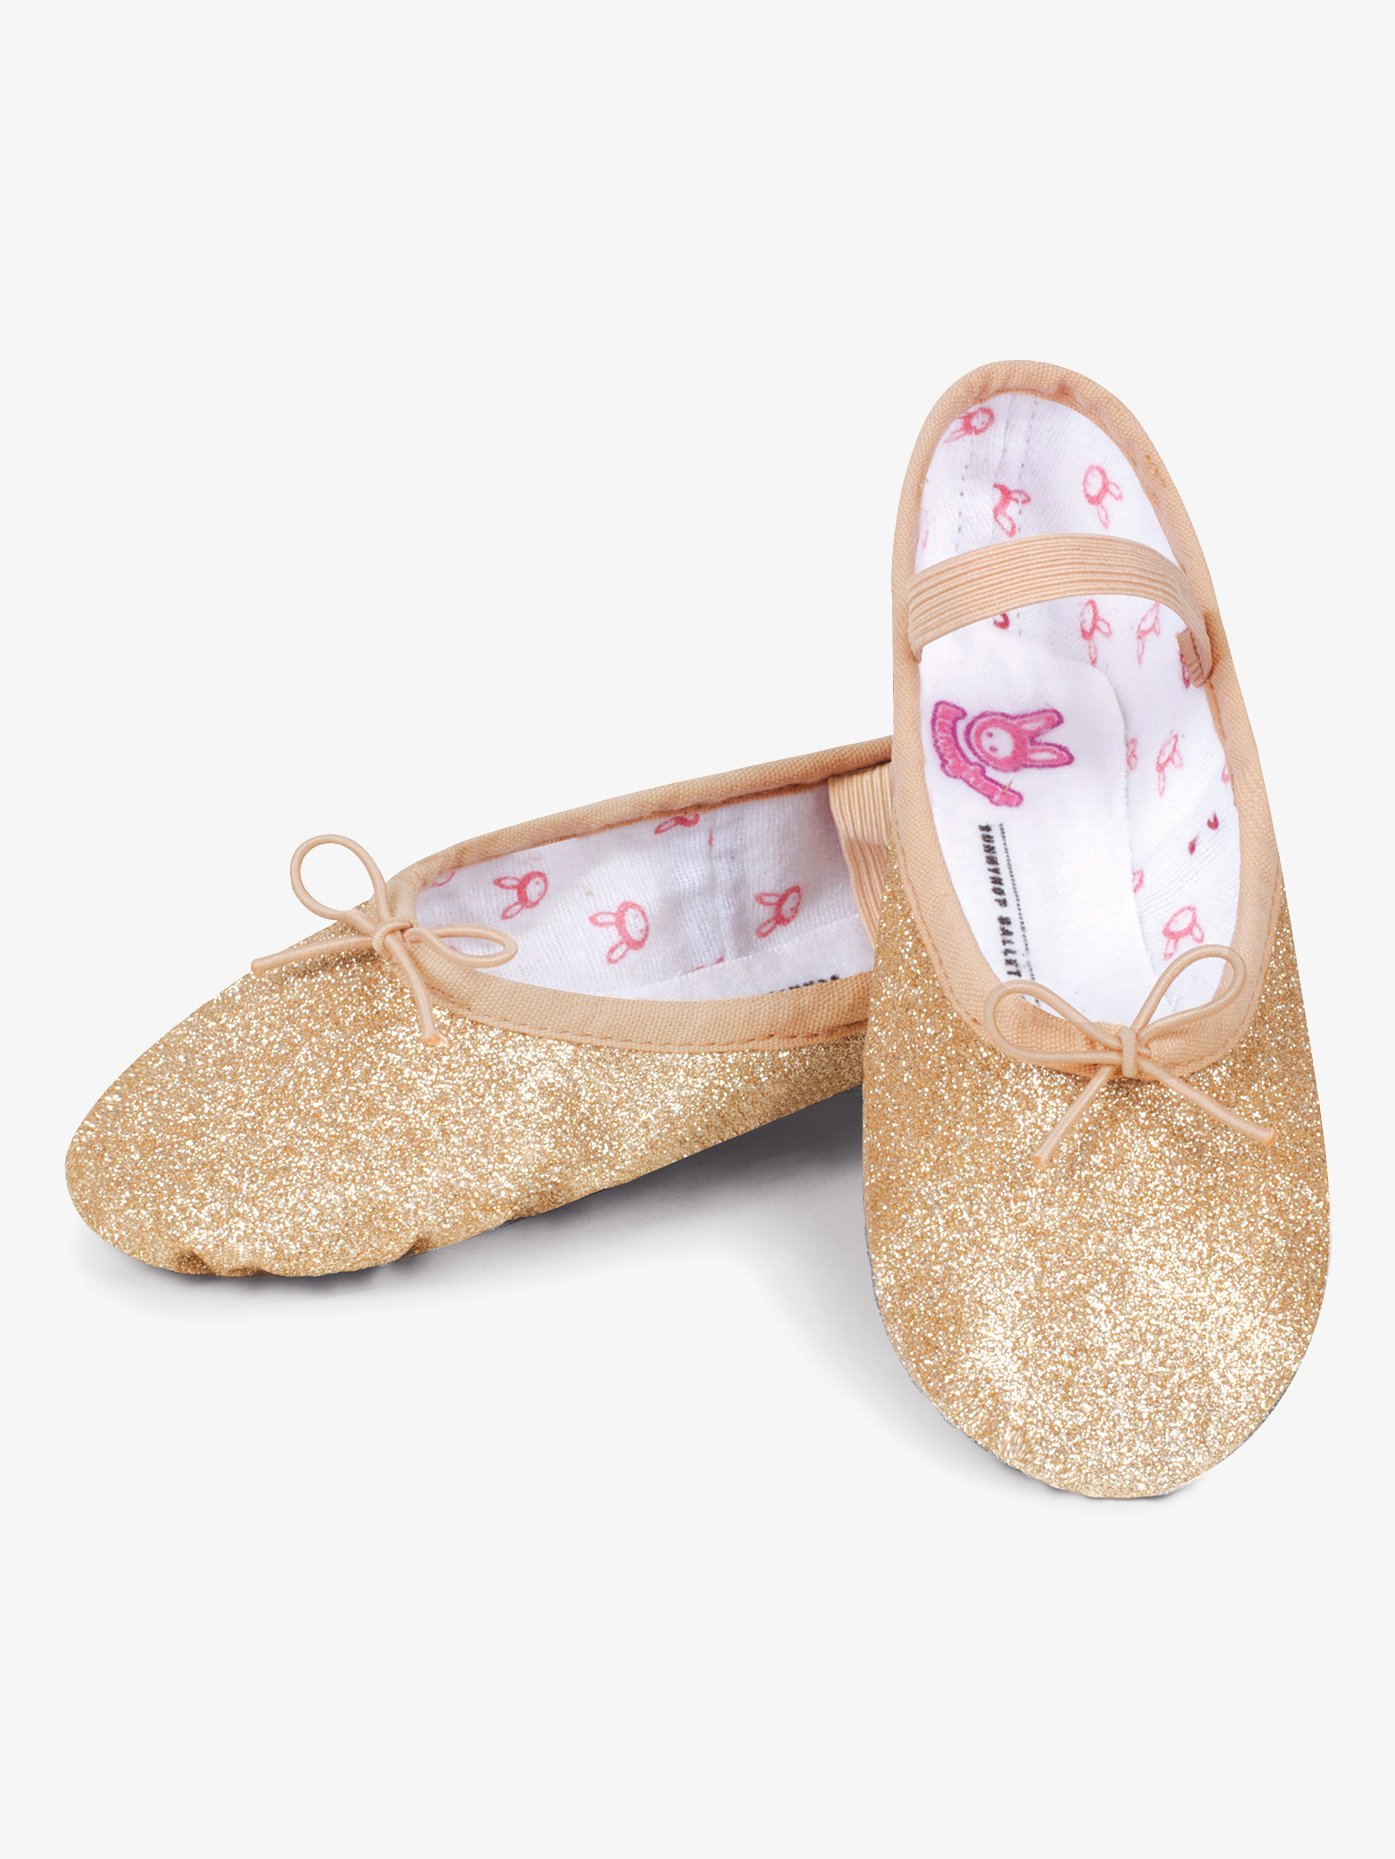 Bloch Child and Toddler Glitterdust Full Sole Ballet Shoes S0225TG